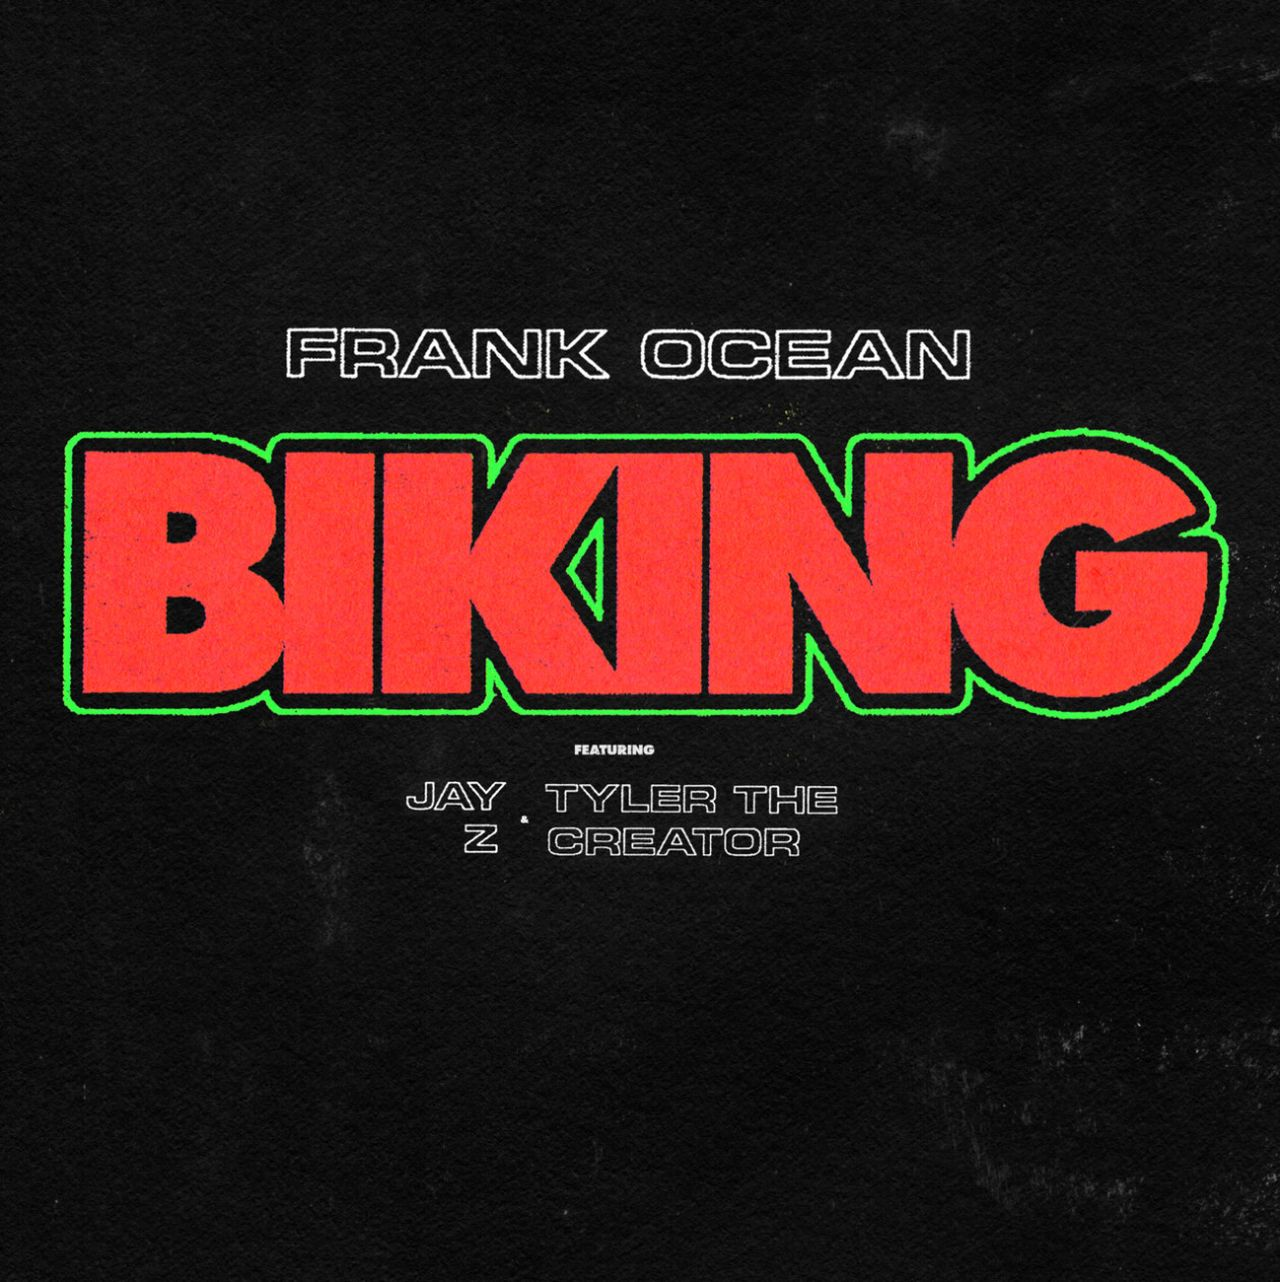 Single Frank Ocean Tyler the Creator Jay Z Biking